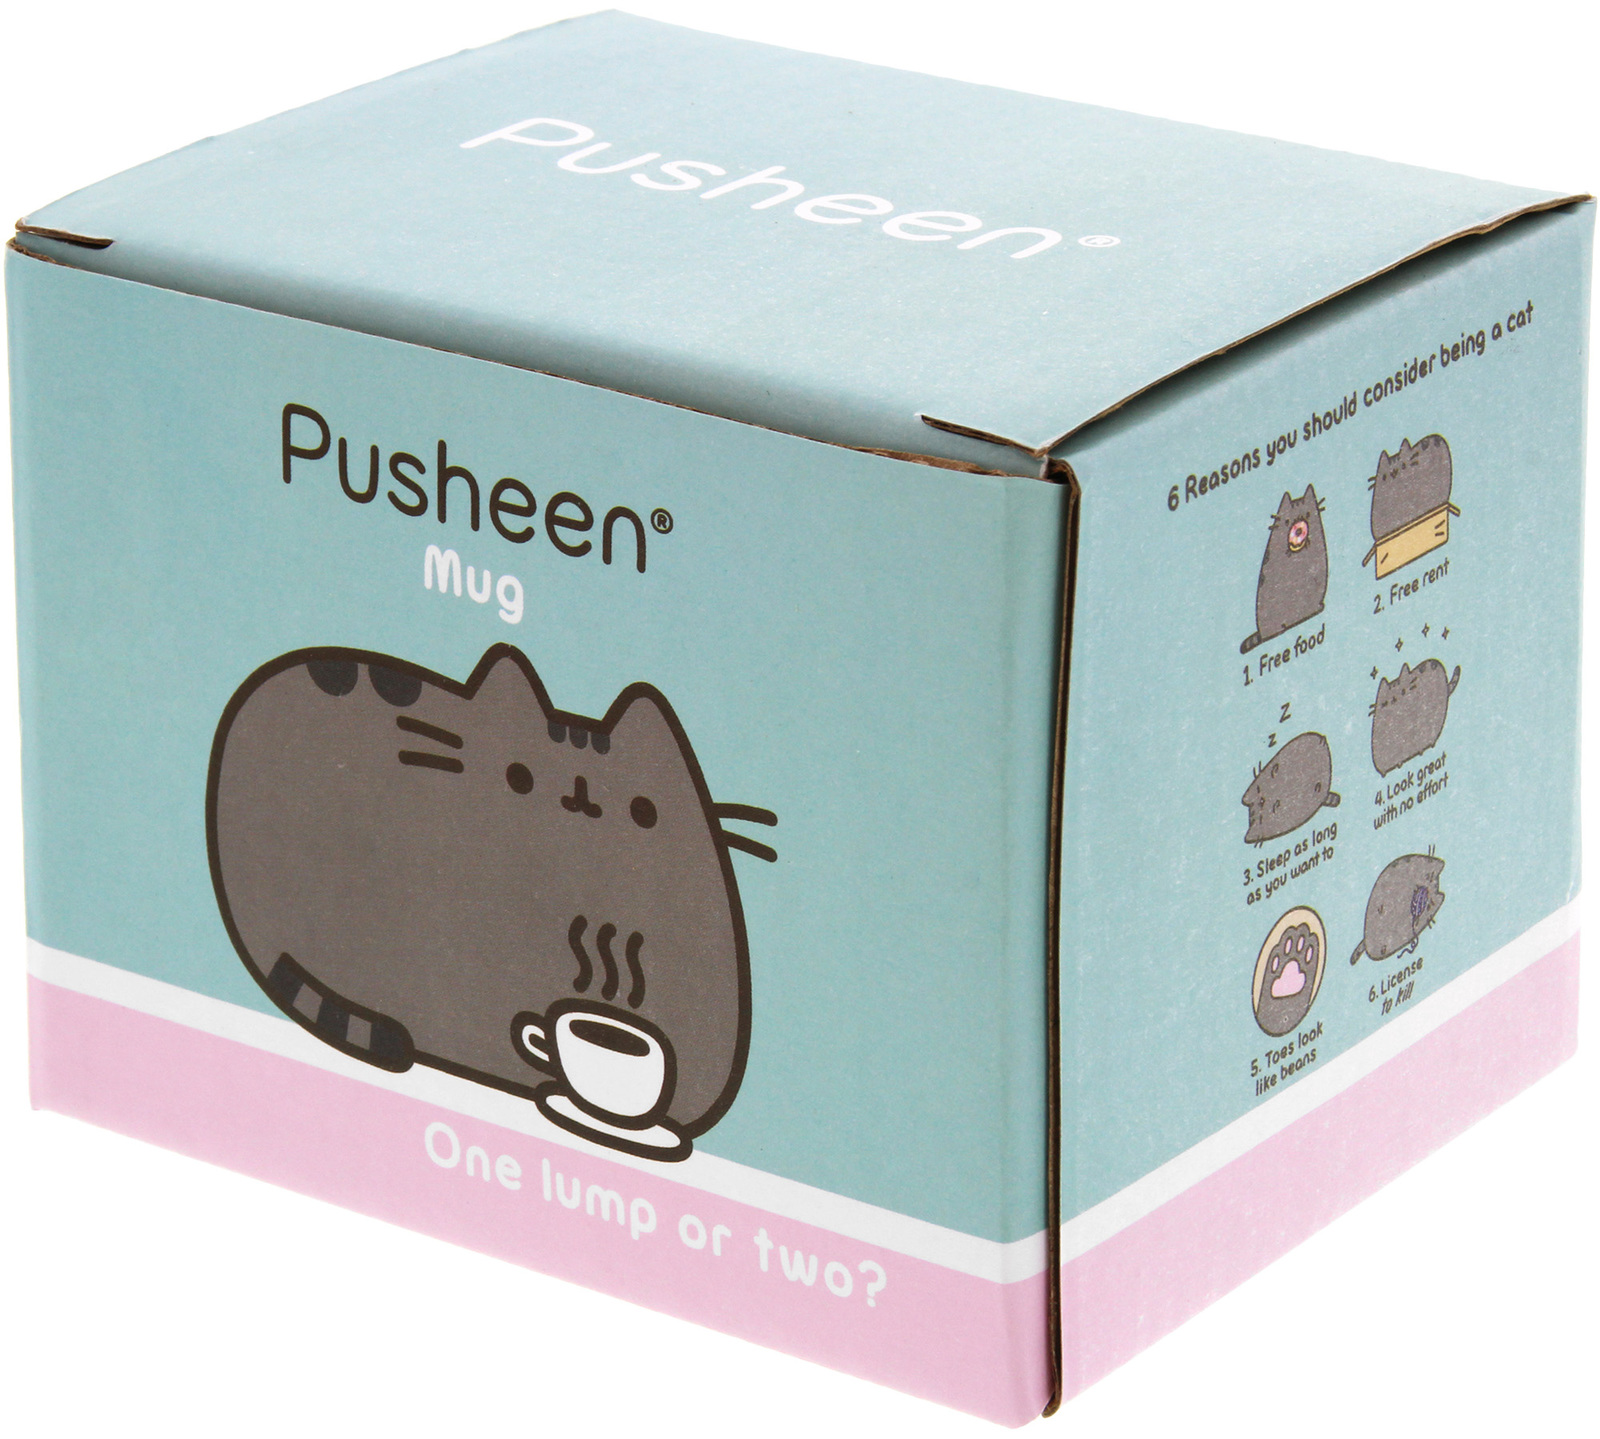 Pusheen - Novelty Mug image